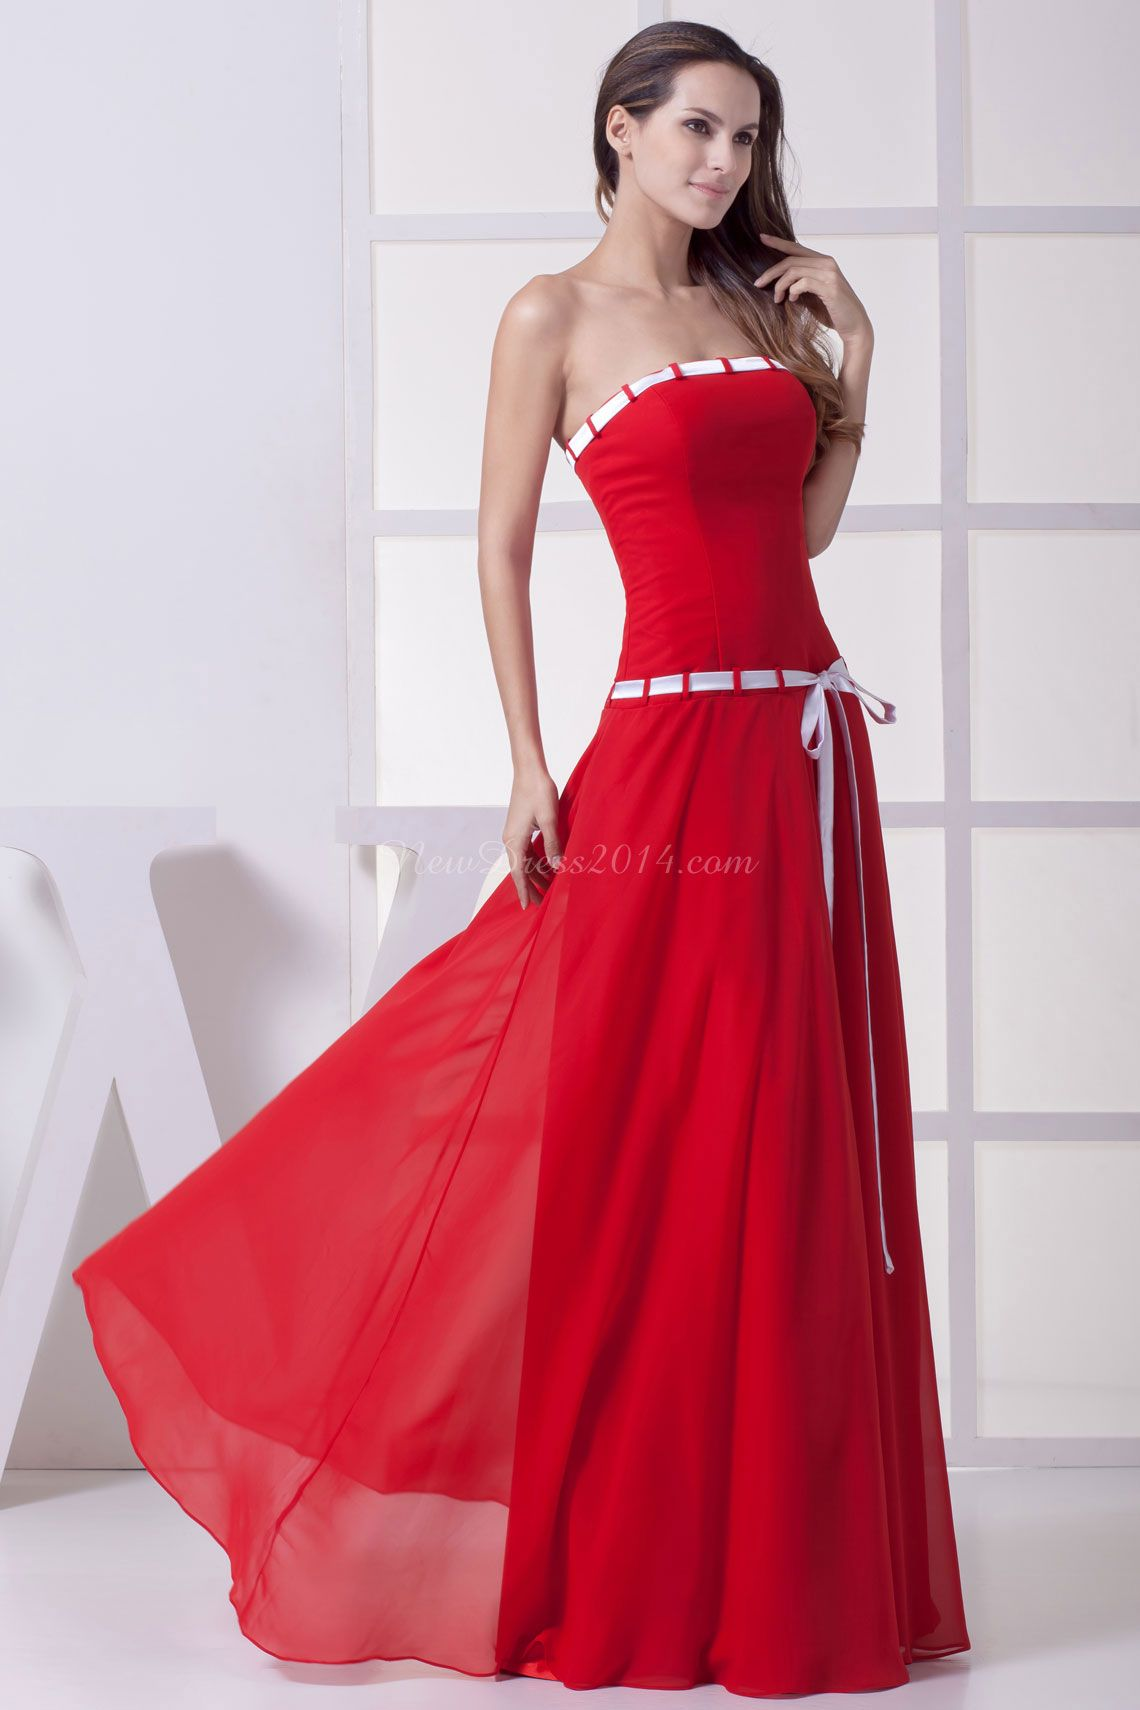 Strapless ribbon long natural waist aline bridesmaid dress